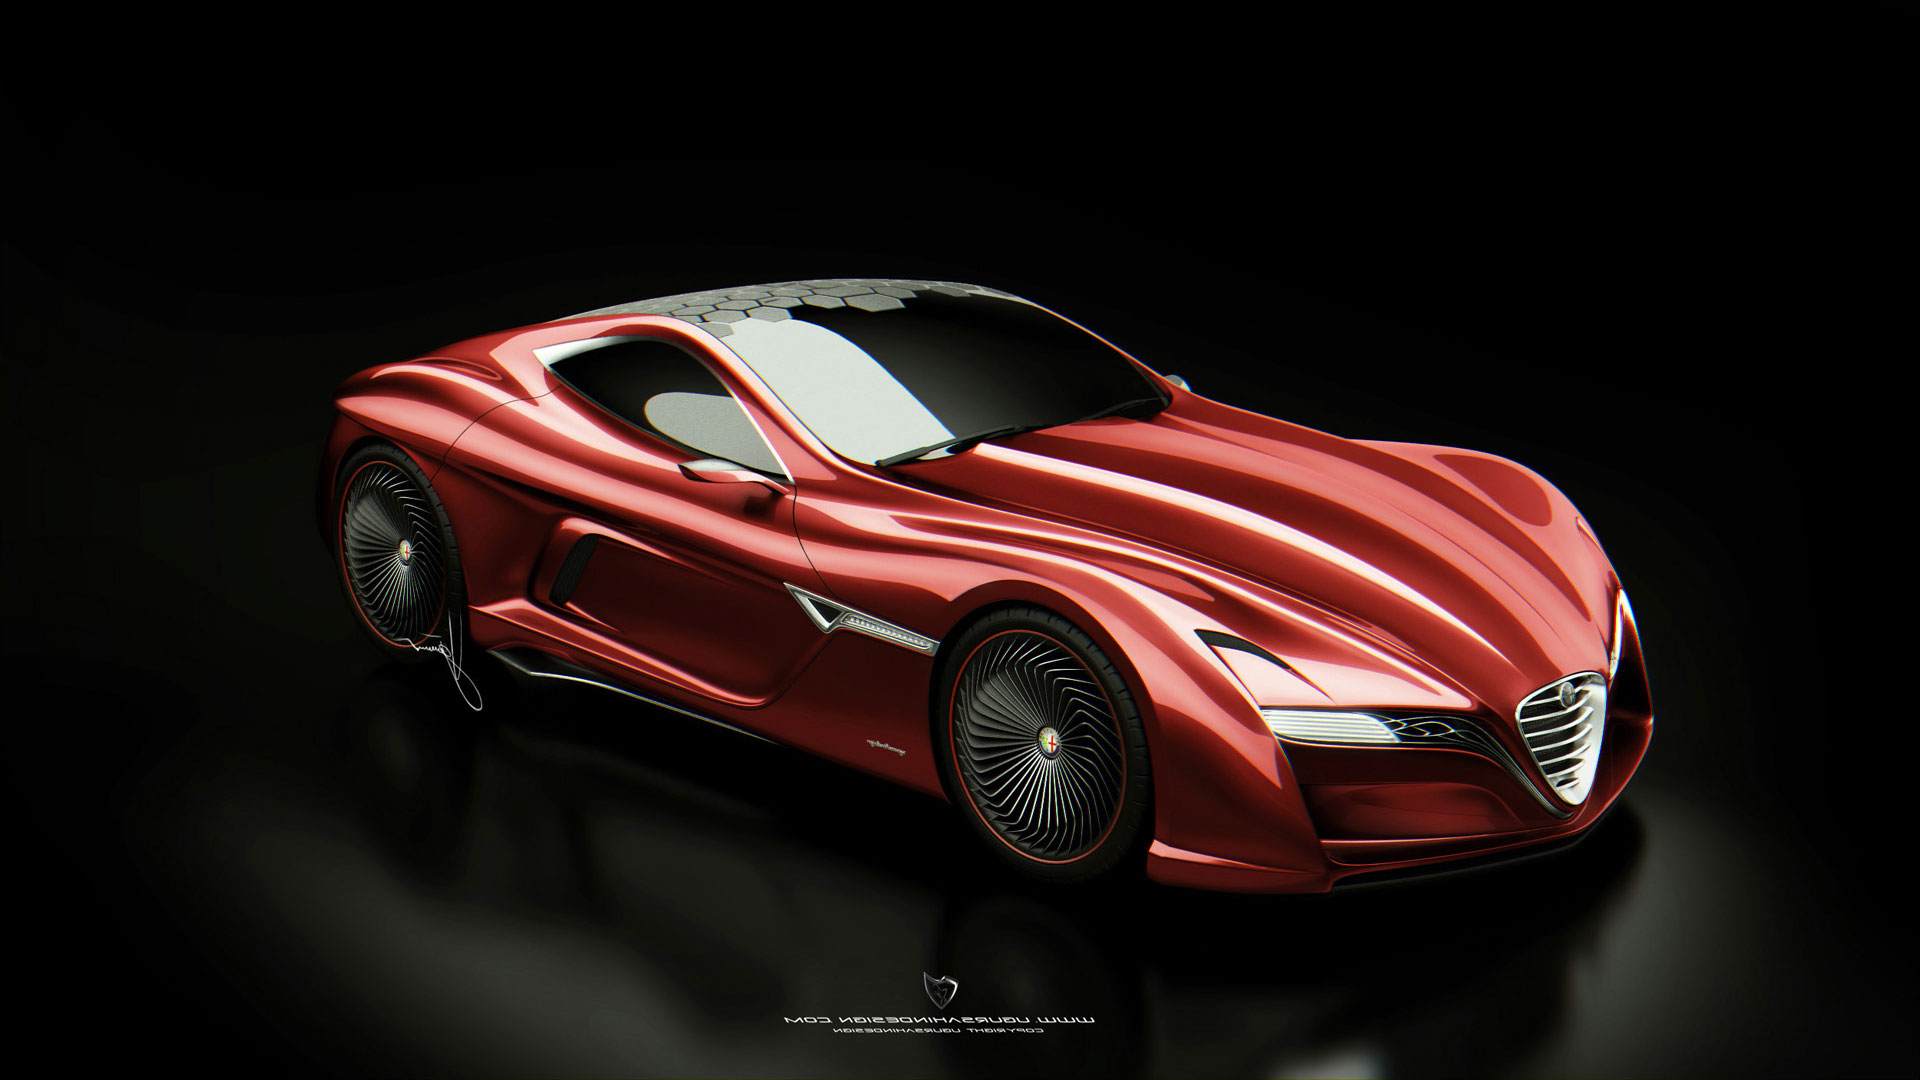 1920x1080 - Alfa Romeo 12C GTS Wallpapers 3